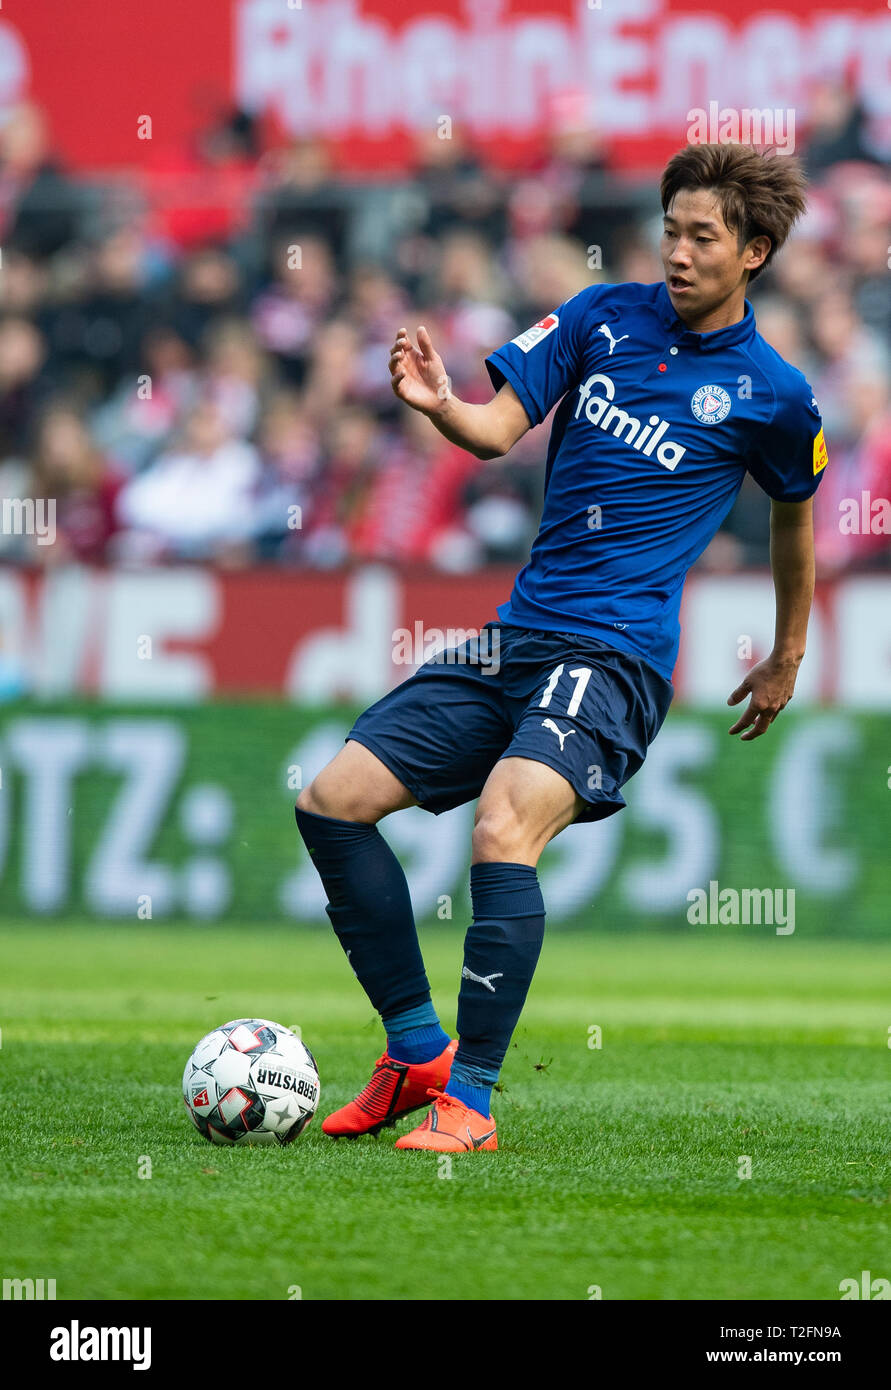 31 March 2019, North Rhine-Westphalia, Köln: Soccer: 2nd Bundesliga, 1st FC Cologne - Holstein Kiel, 27th matchday in the Rhein-Energie-Stadion. Kiels Masaya Okugawa on the ball. Photo: Guido Kirchner/dpa - IMPORTANT NOTE: In accordance with the requirements of the DFL Deutsche Fußball Liga or the DFB Deutscher Fußball-Bund, it is prohibited to use or have used photographs taken in the stadium and/or the match in the form of sequence images and/or video-like photo sequences. Stock Photo